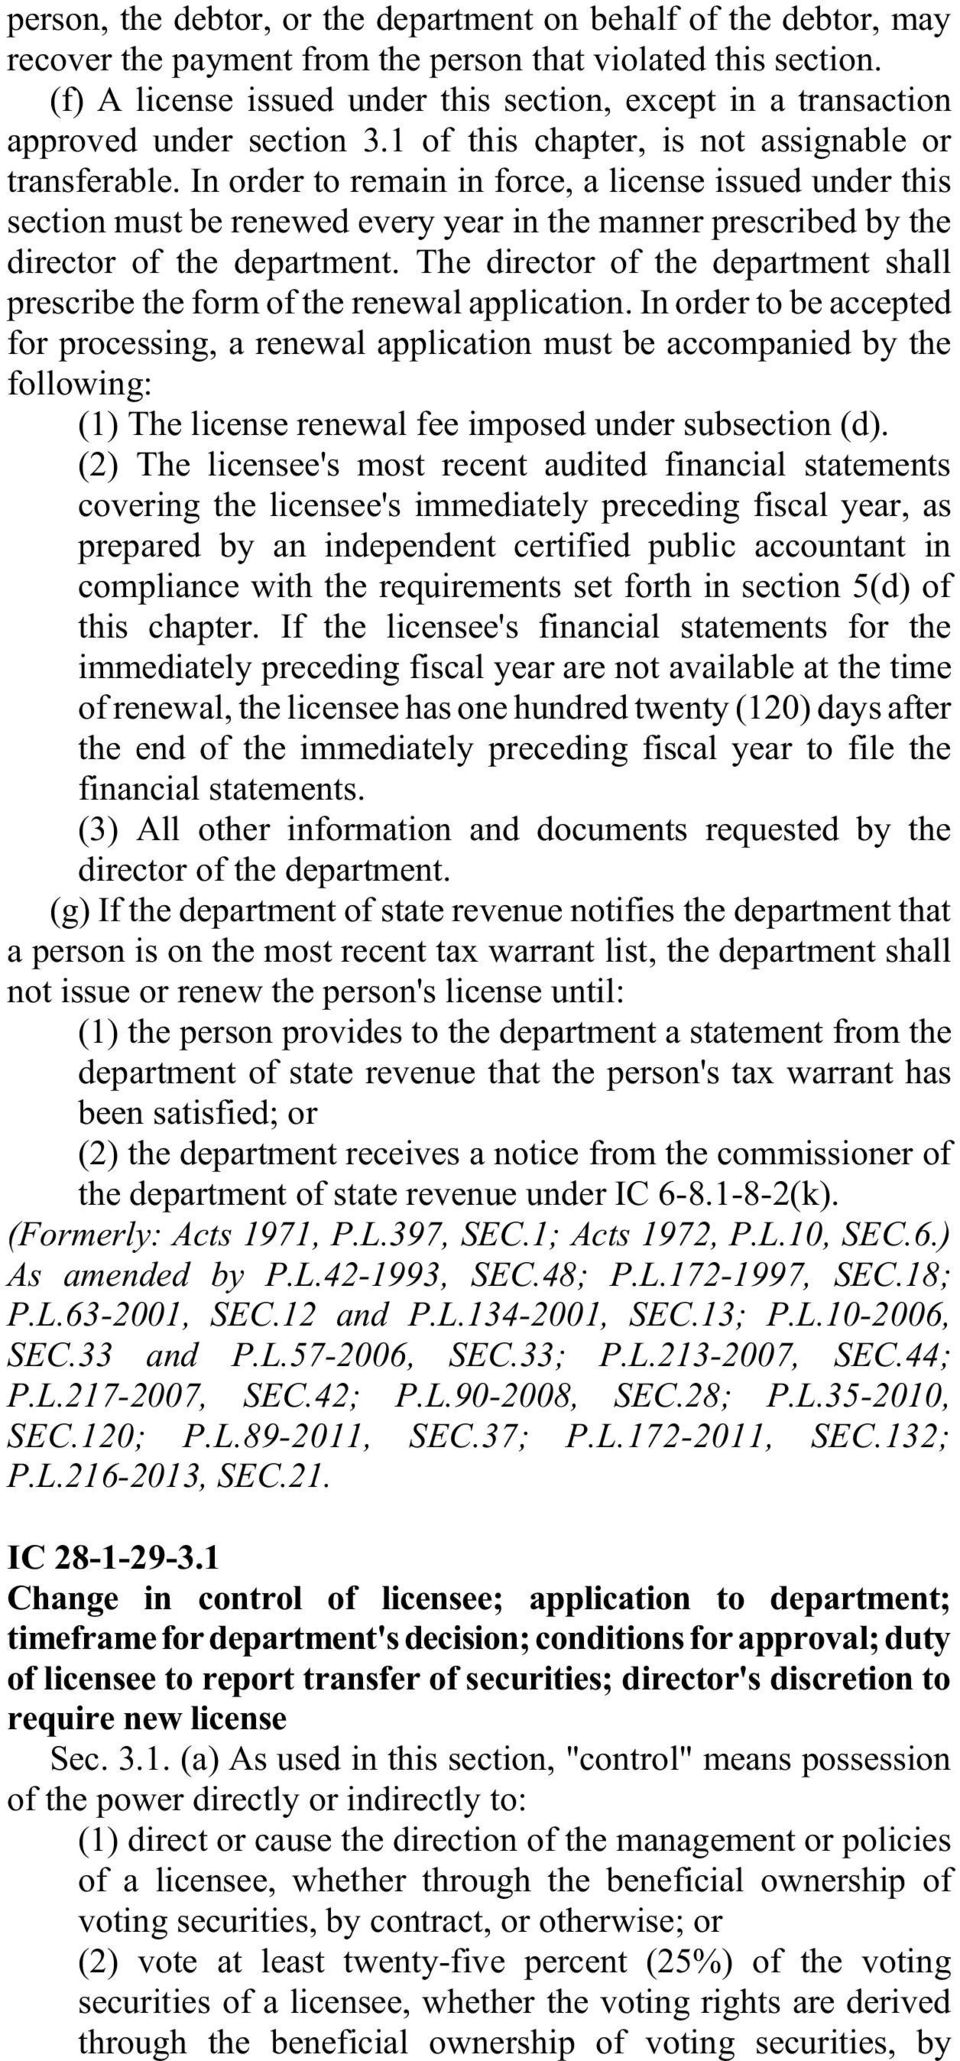 In order to remain in force, a license issued under this section must be renewed every year in the manner prescribed by the director of the department.